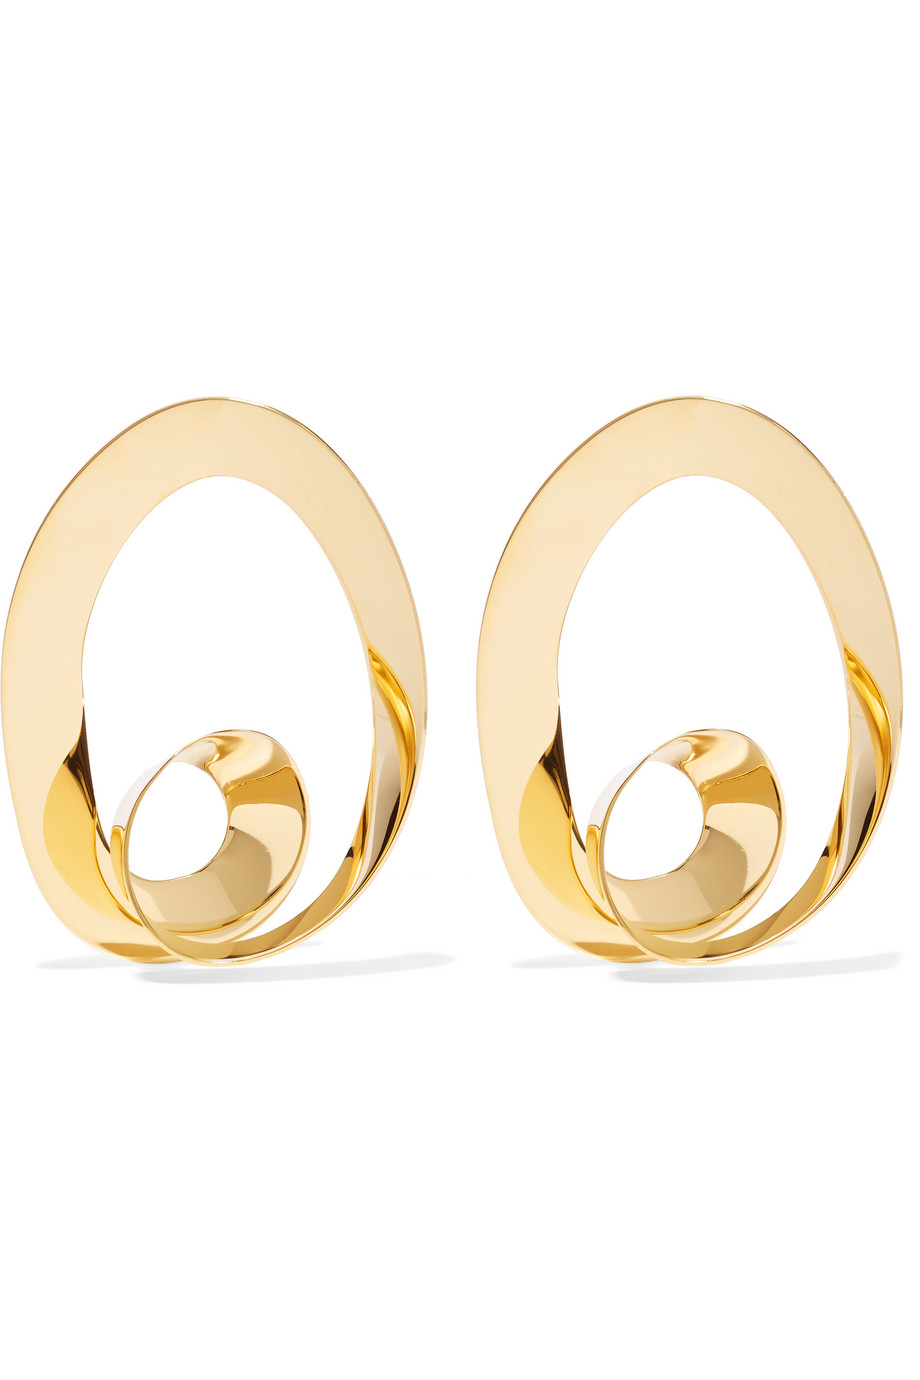 Marni Gold-Plated Hoop Earrings, Women's